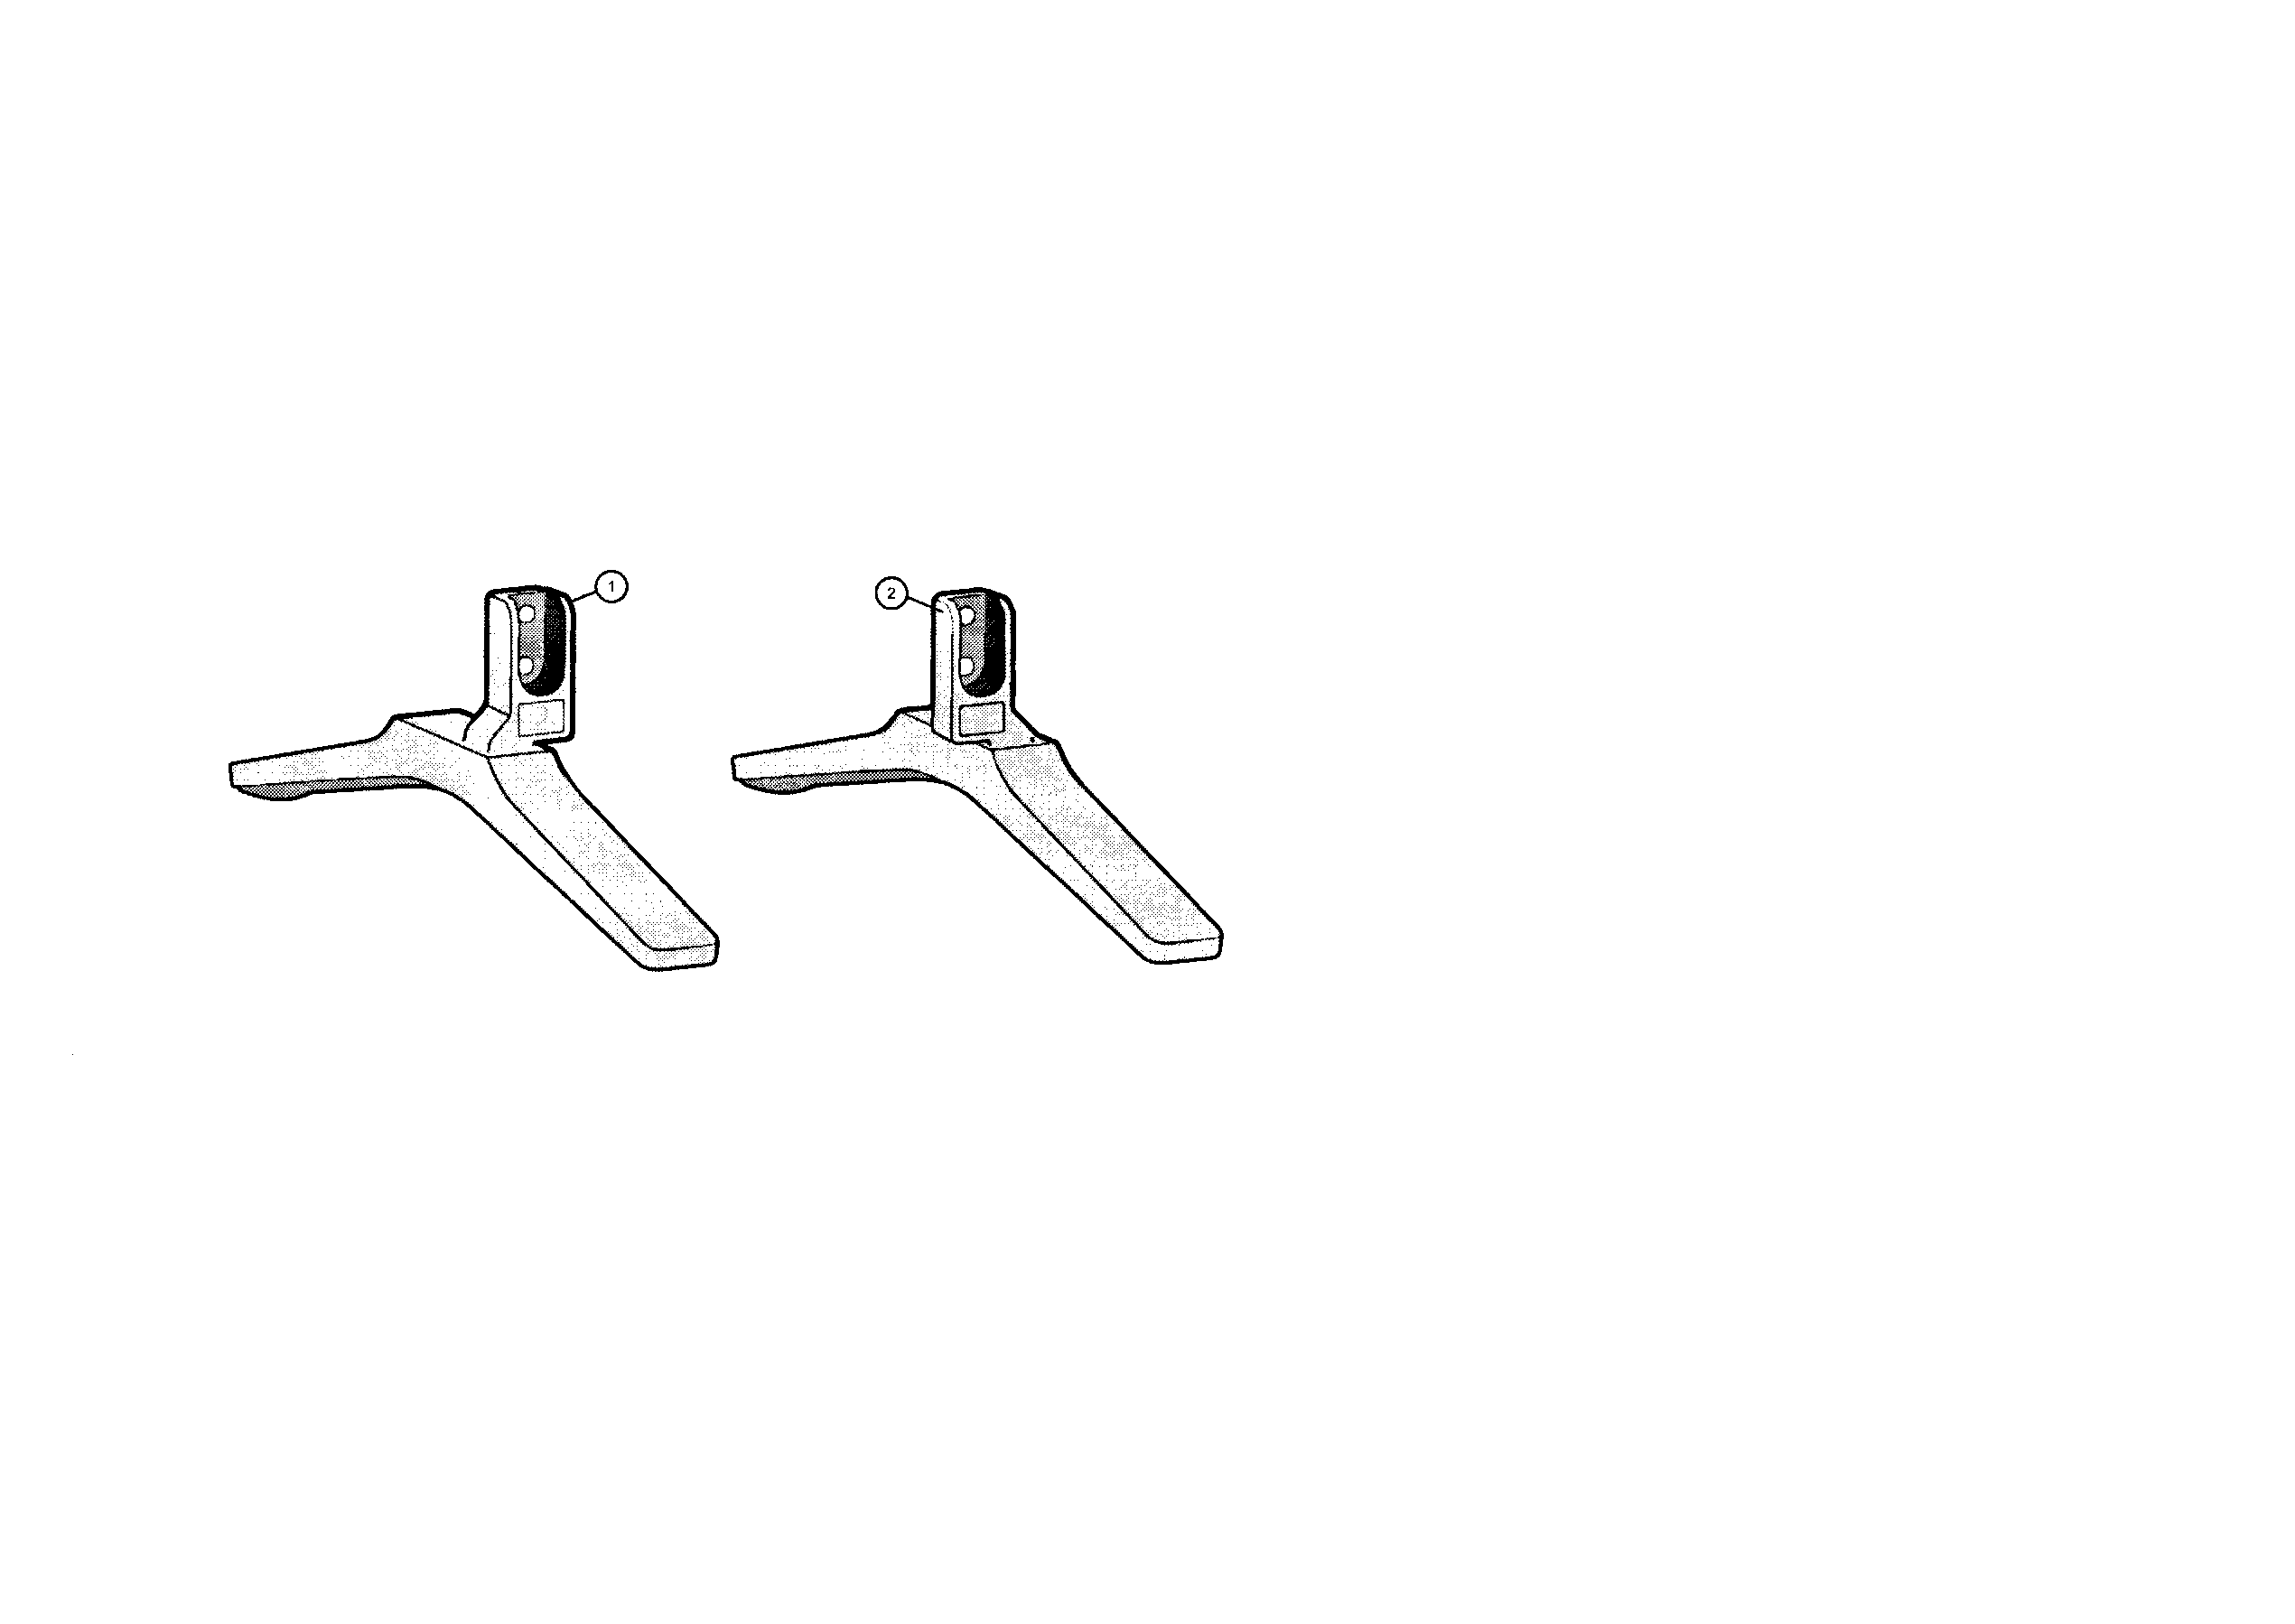 Sony XBR-65X900B table top stand diagram